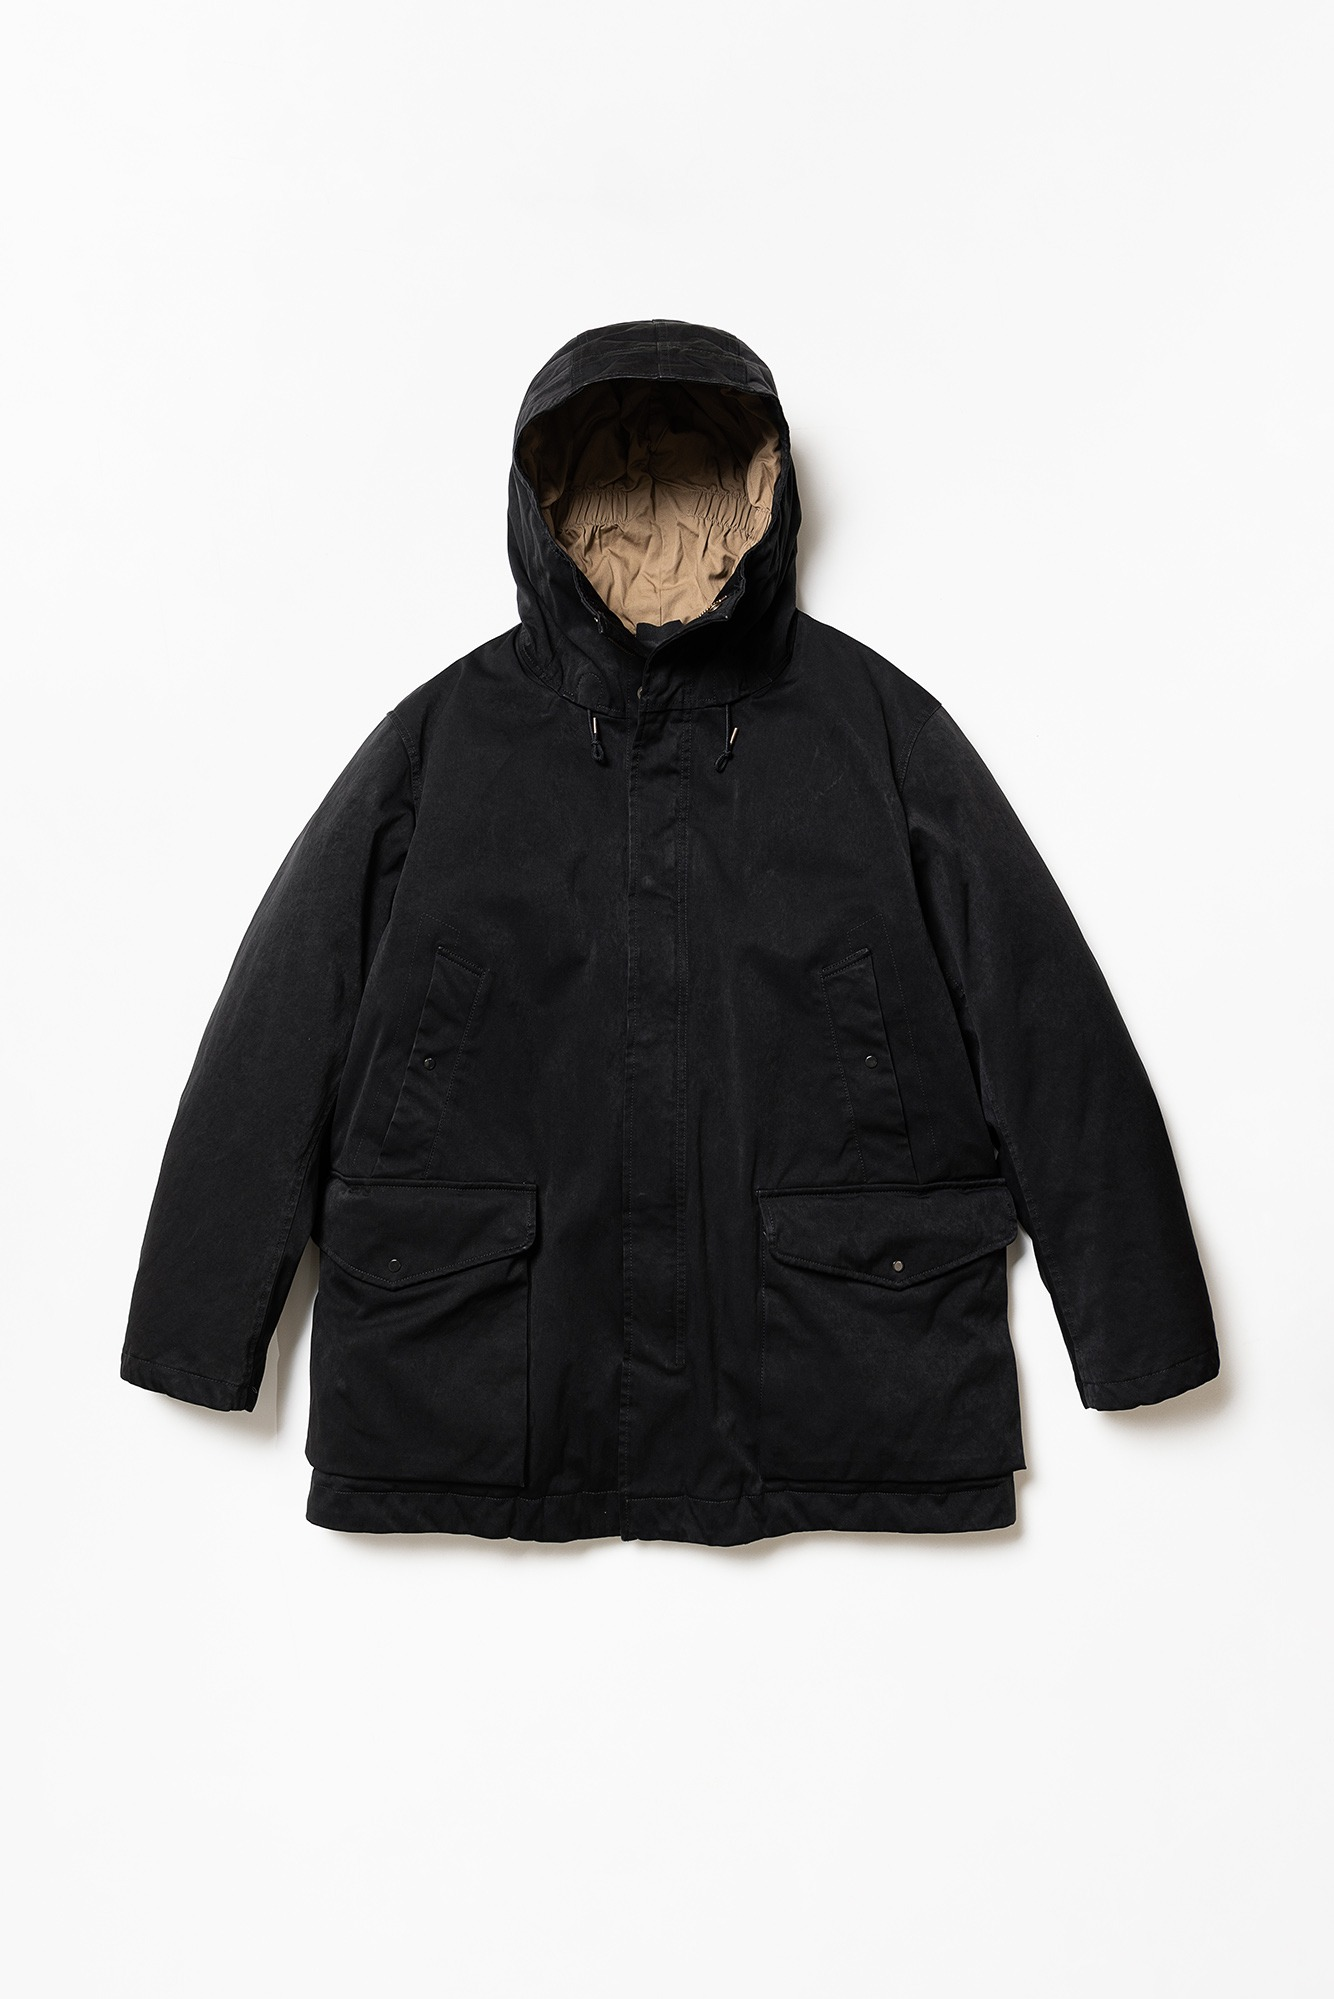 "TEN-C Canon Jacket ""Black"""